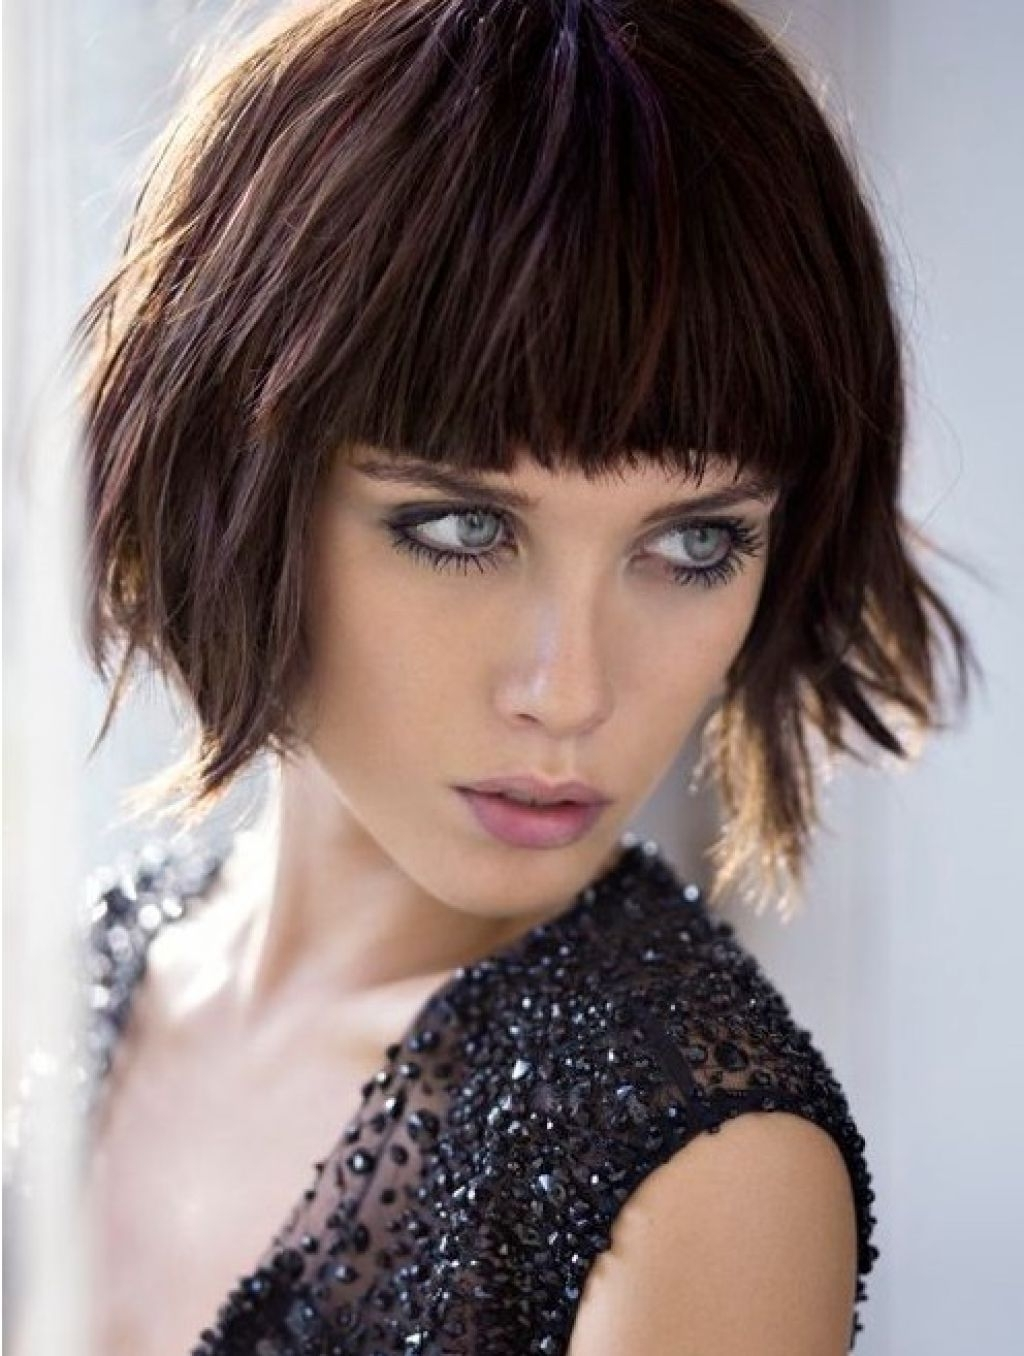 Shaggy Bob Haircuts With Blunt Bangs – Women Medium Haircut In 2018 Shaggy Bob Hairstyles With Bangs (View 3 of 15)